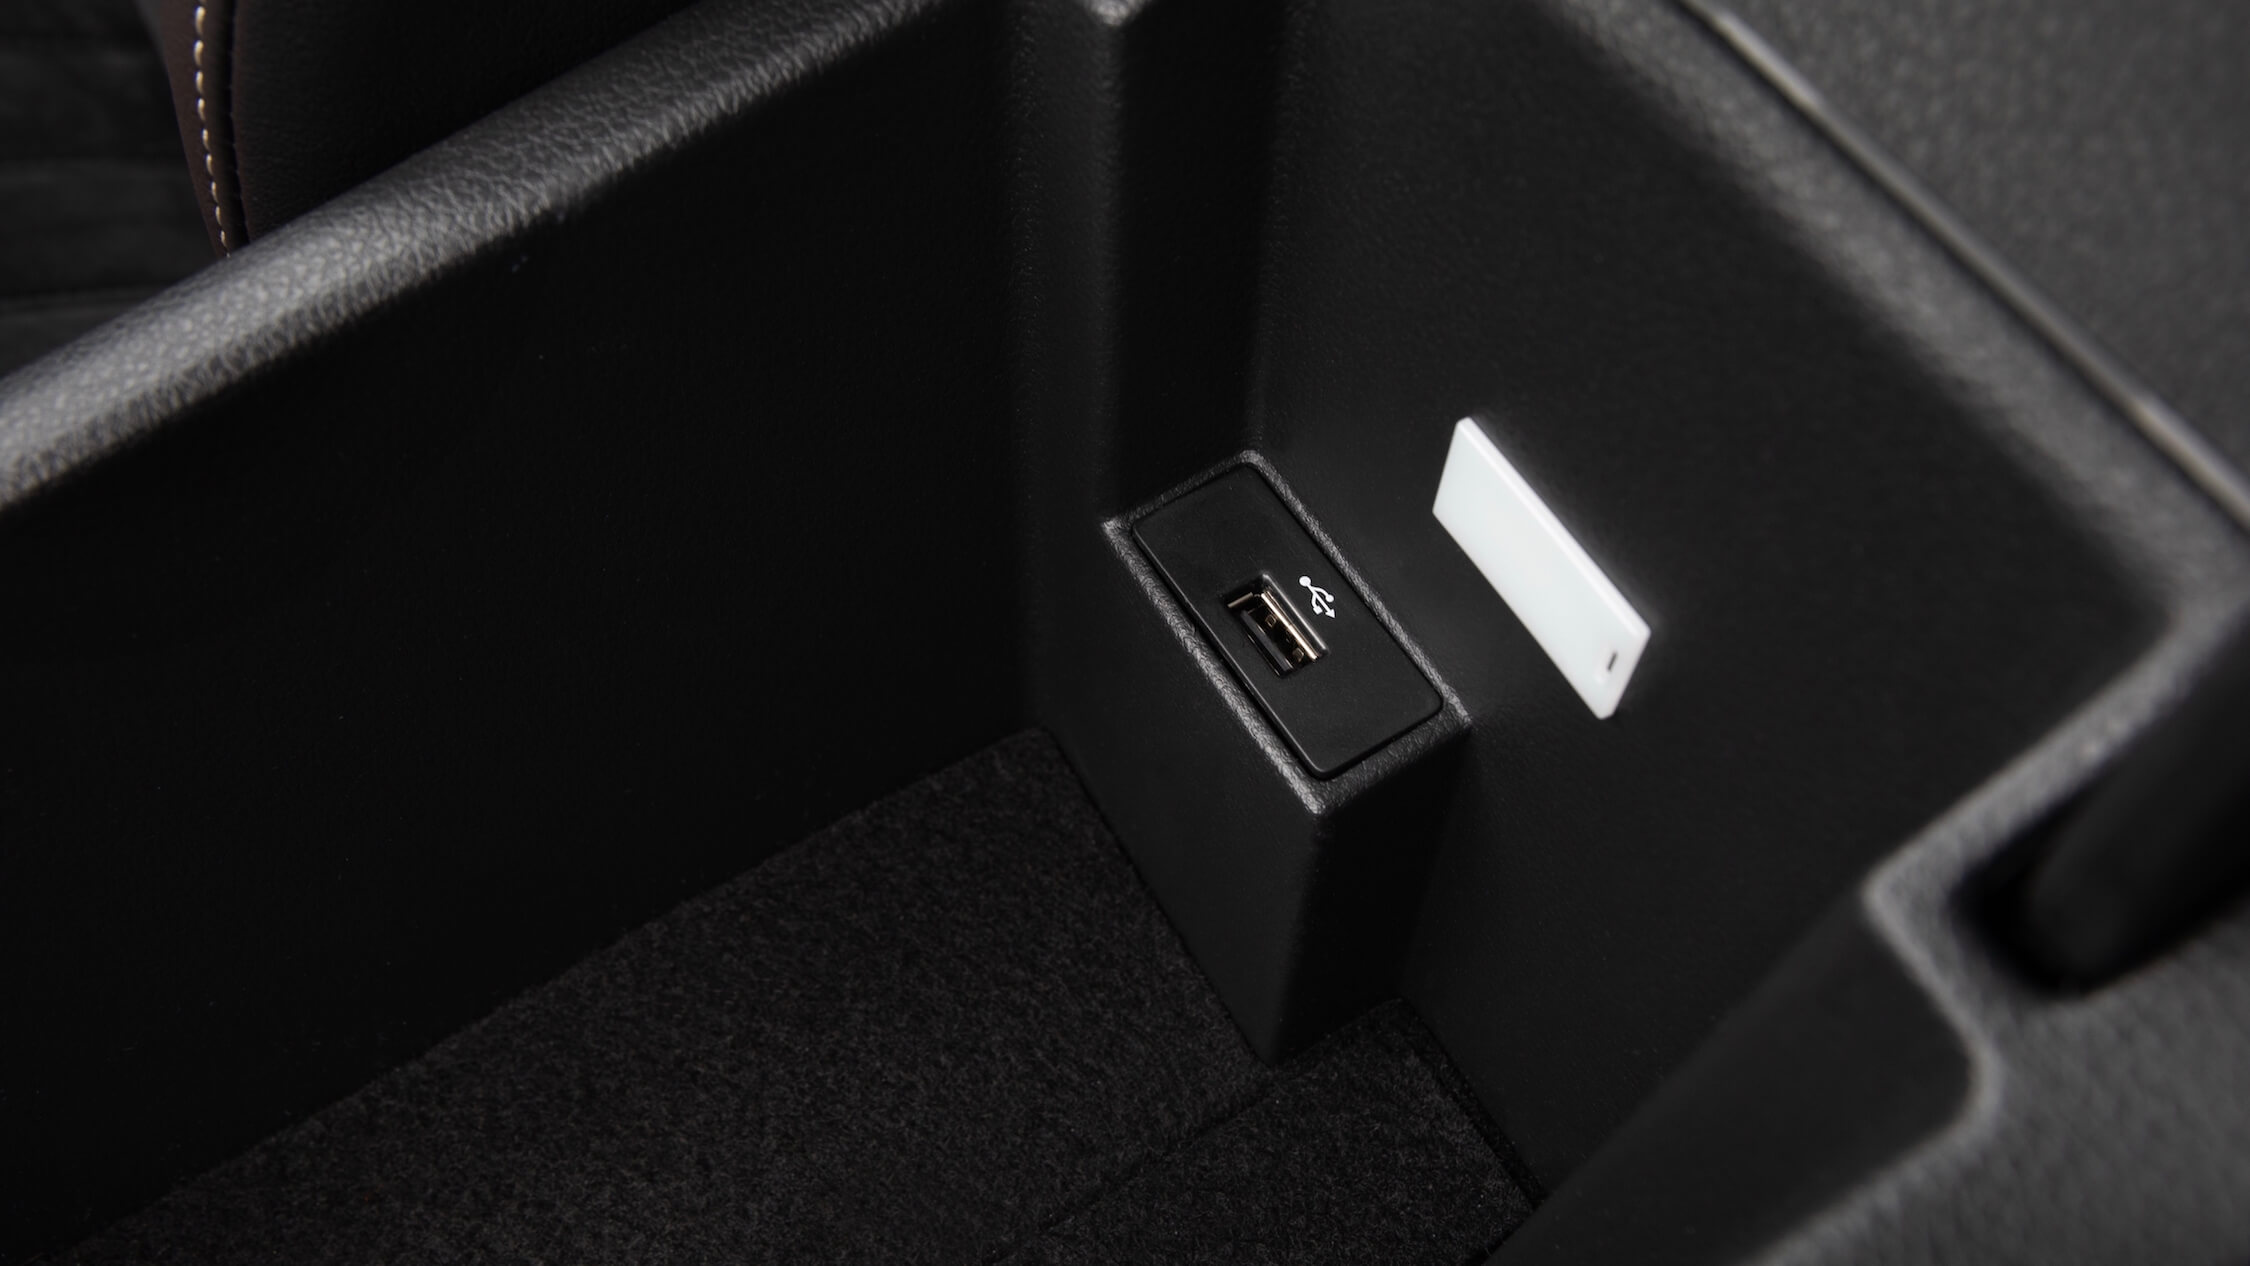 plug-in hybride Skoda Superb USB connector